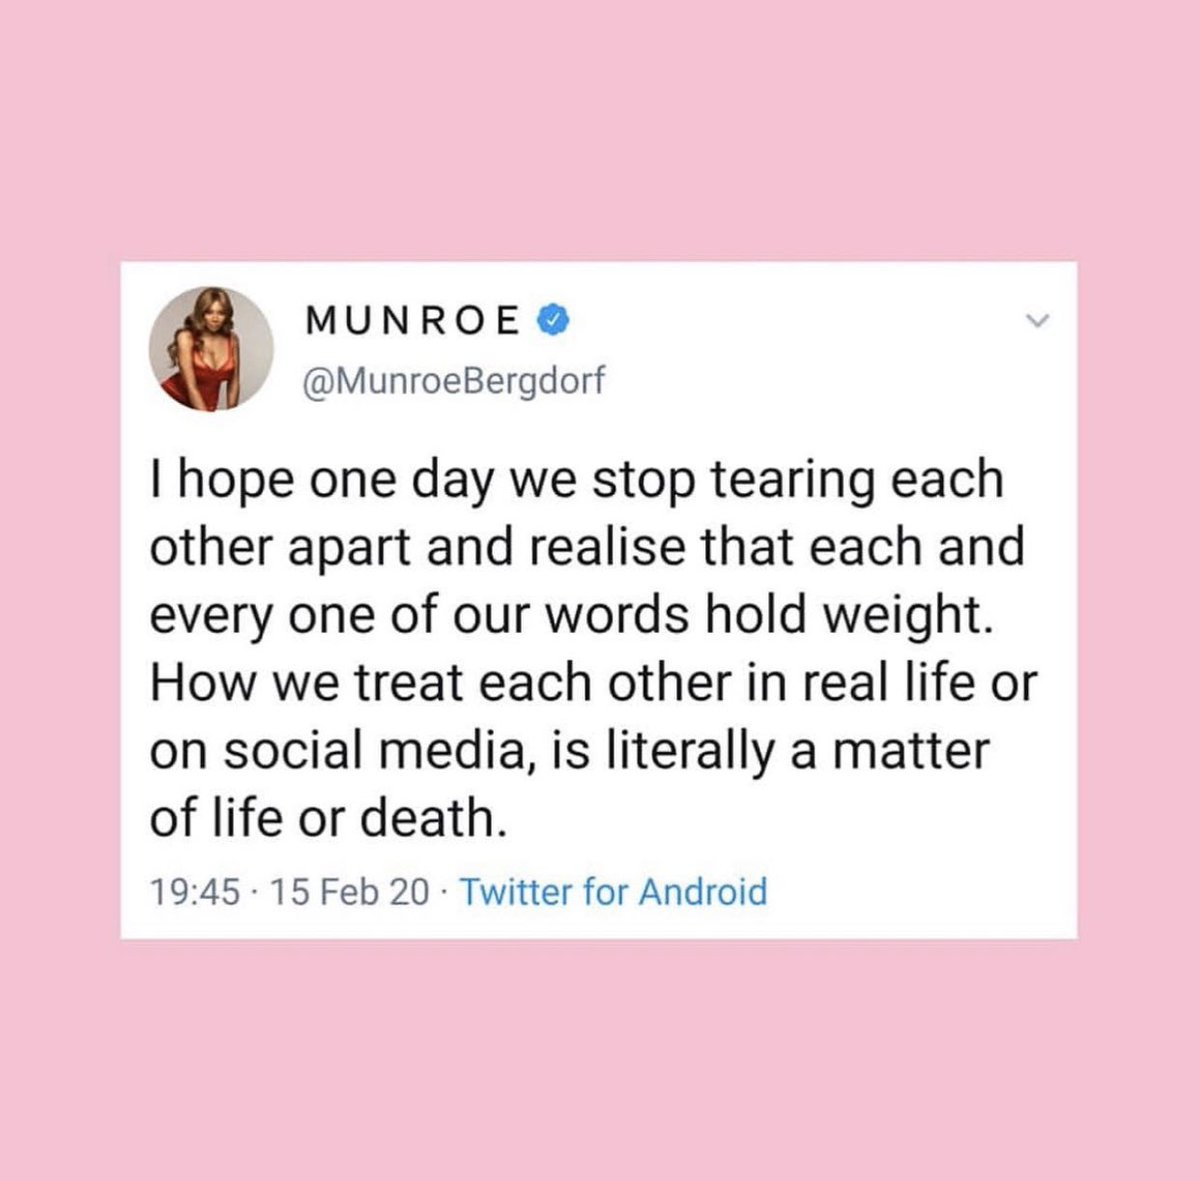 🙏🏻 have to re share these words from you gorgeous xx so true and real at this time @MunroeBergdorf